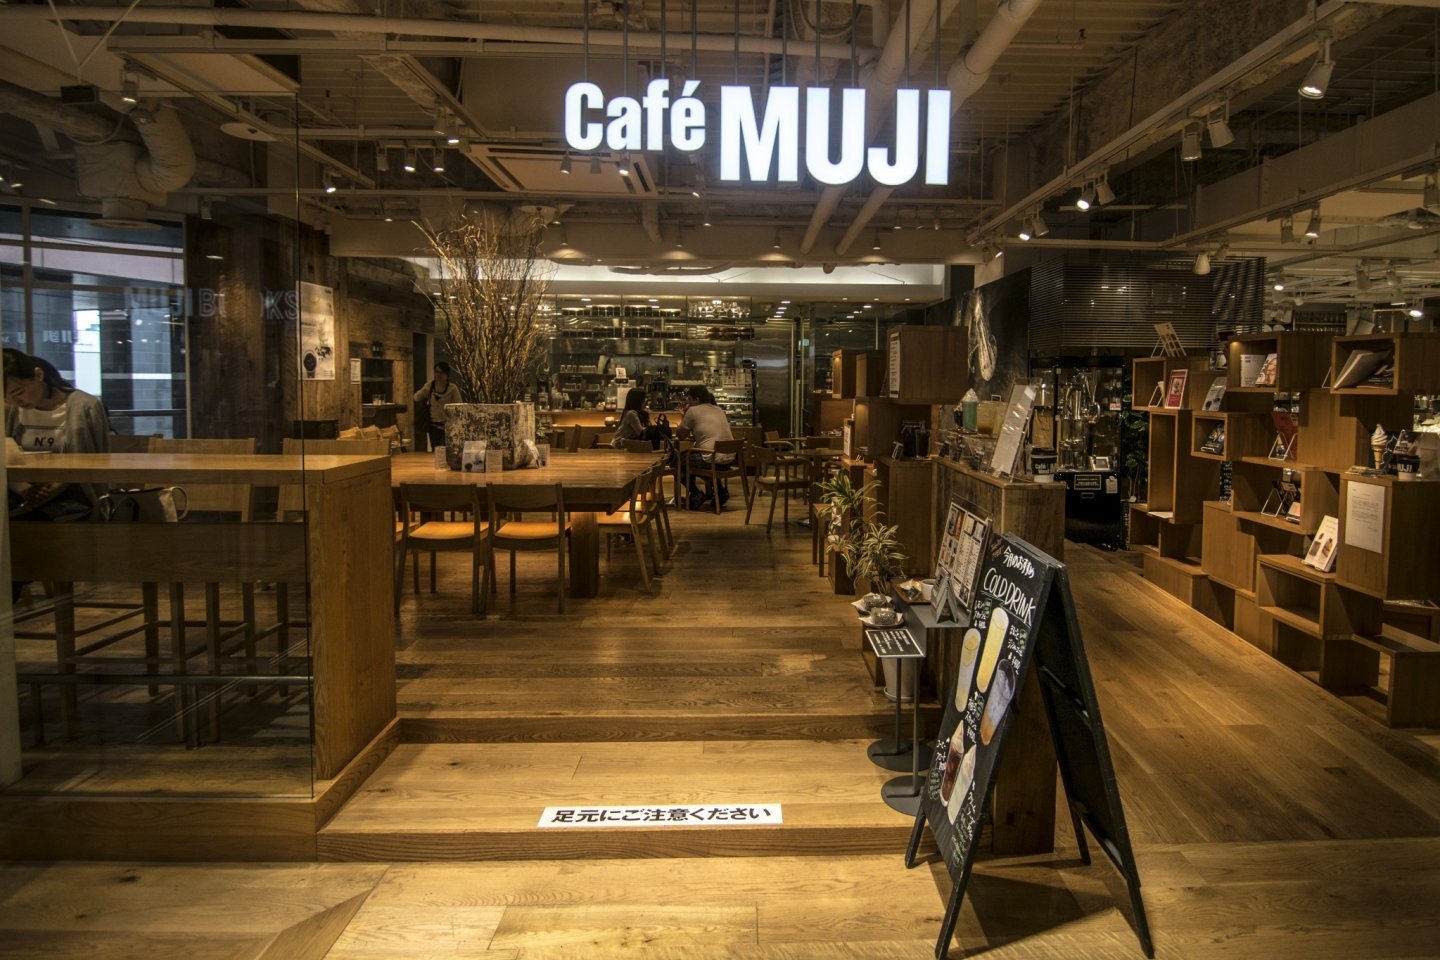 Visitors from the entire Kyushu Region, as well as the nearby Chugoku Region flock here to visit the one and onlyCafé & Meal MUJI (Canal City Fukuoka) in Fukuoka and Kyushu.